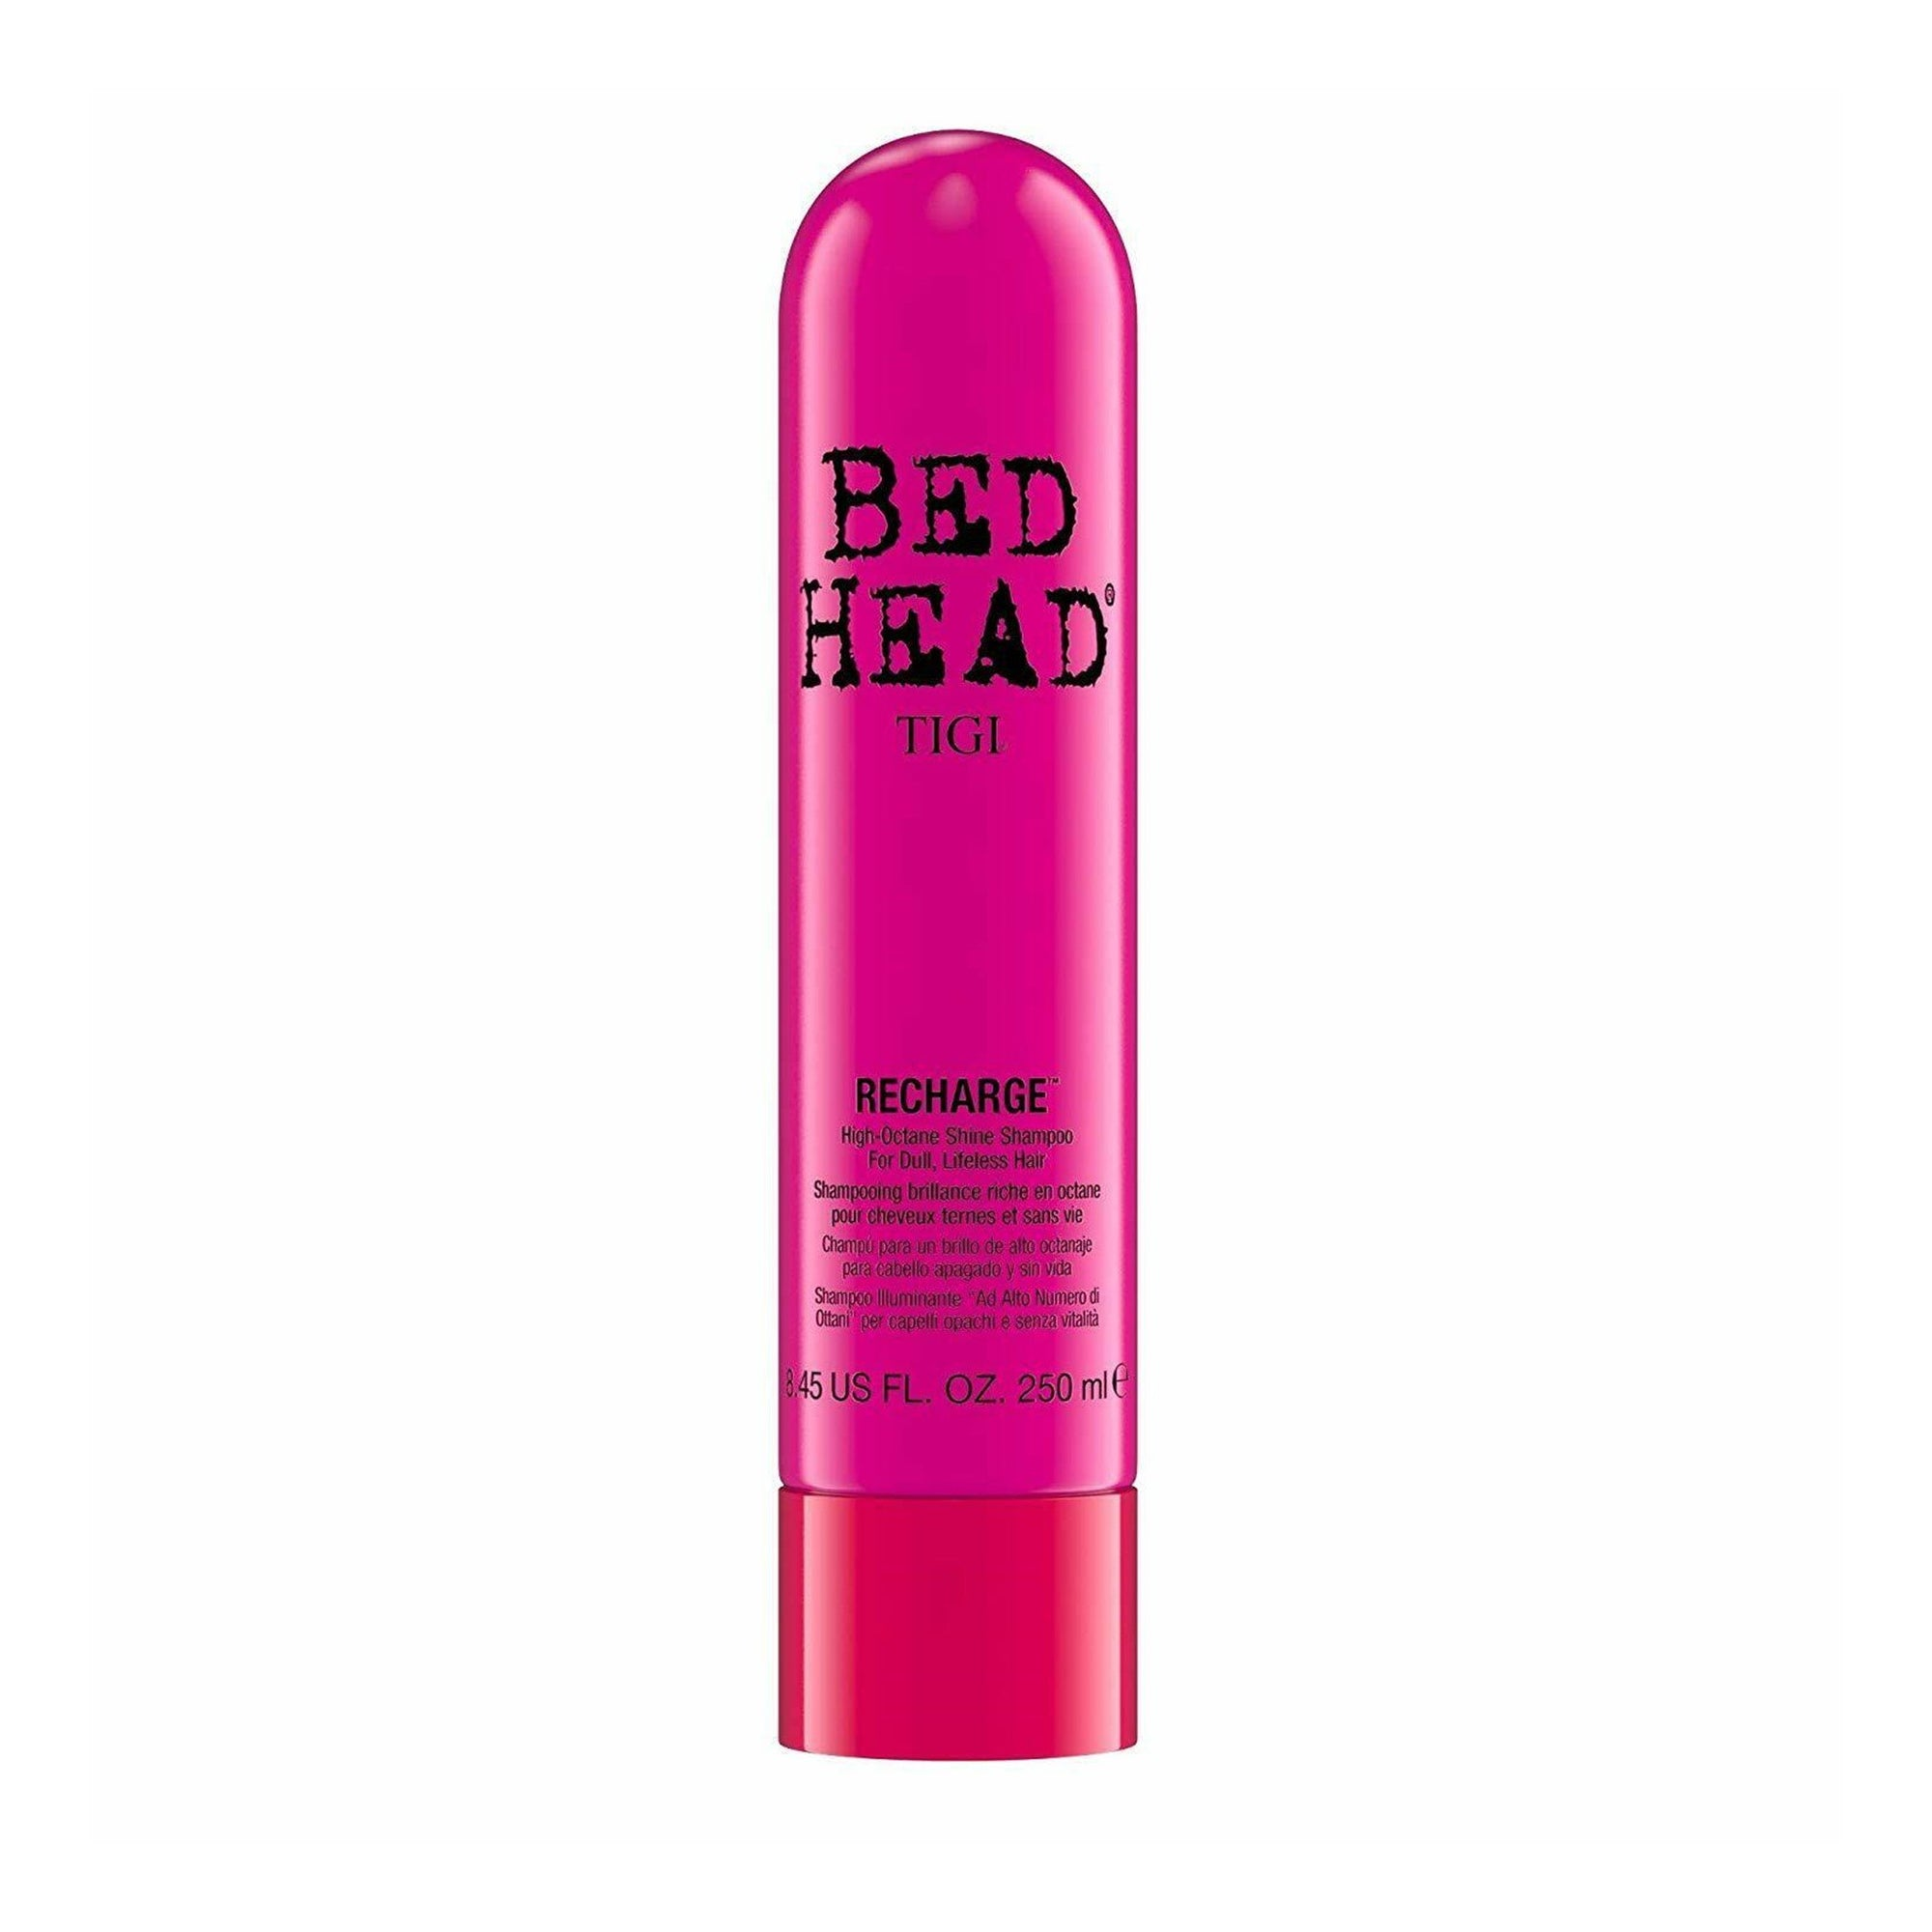 TIGI Bed Head Shampoo Hard Recharge Clarifying Shine 250ml